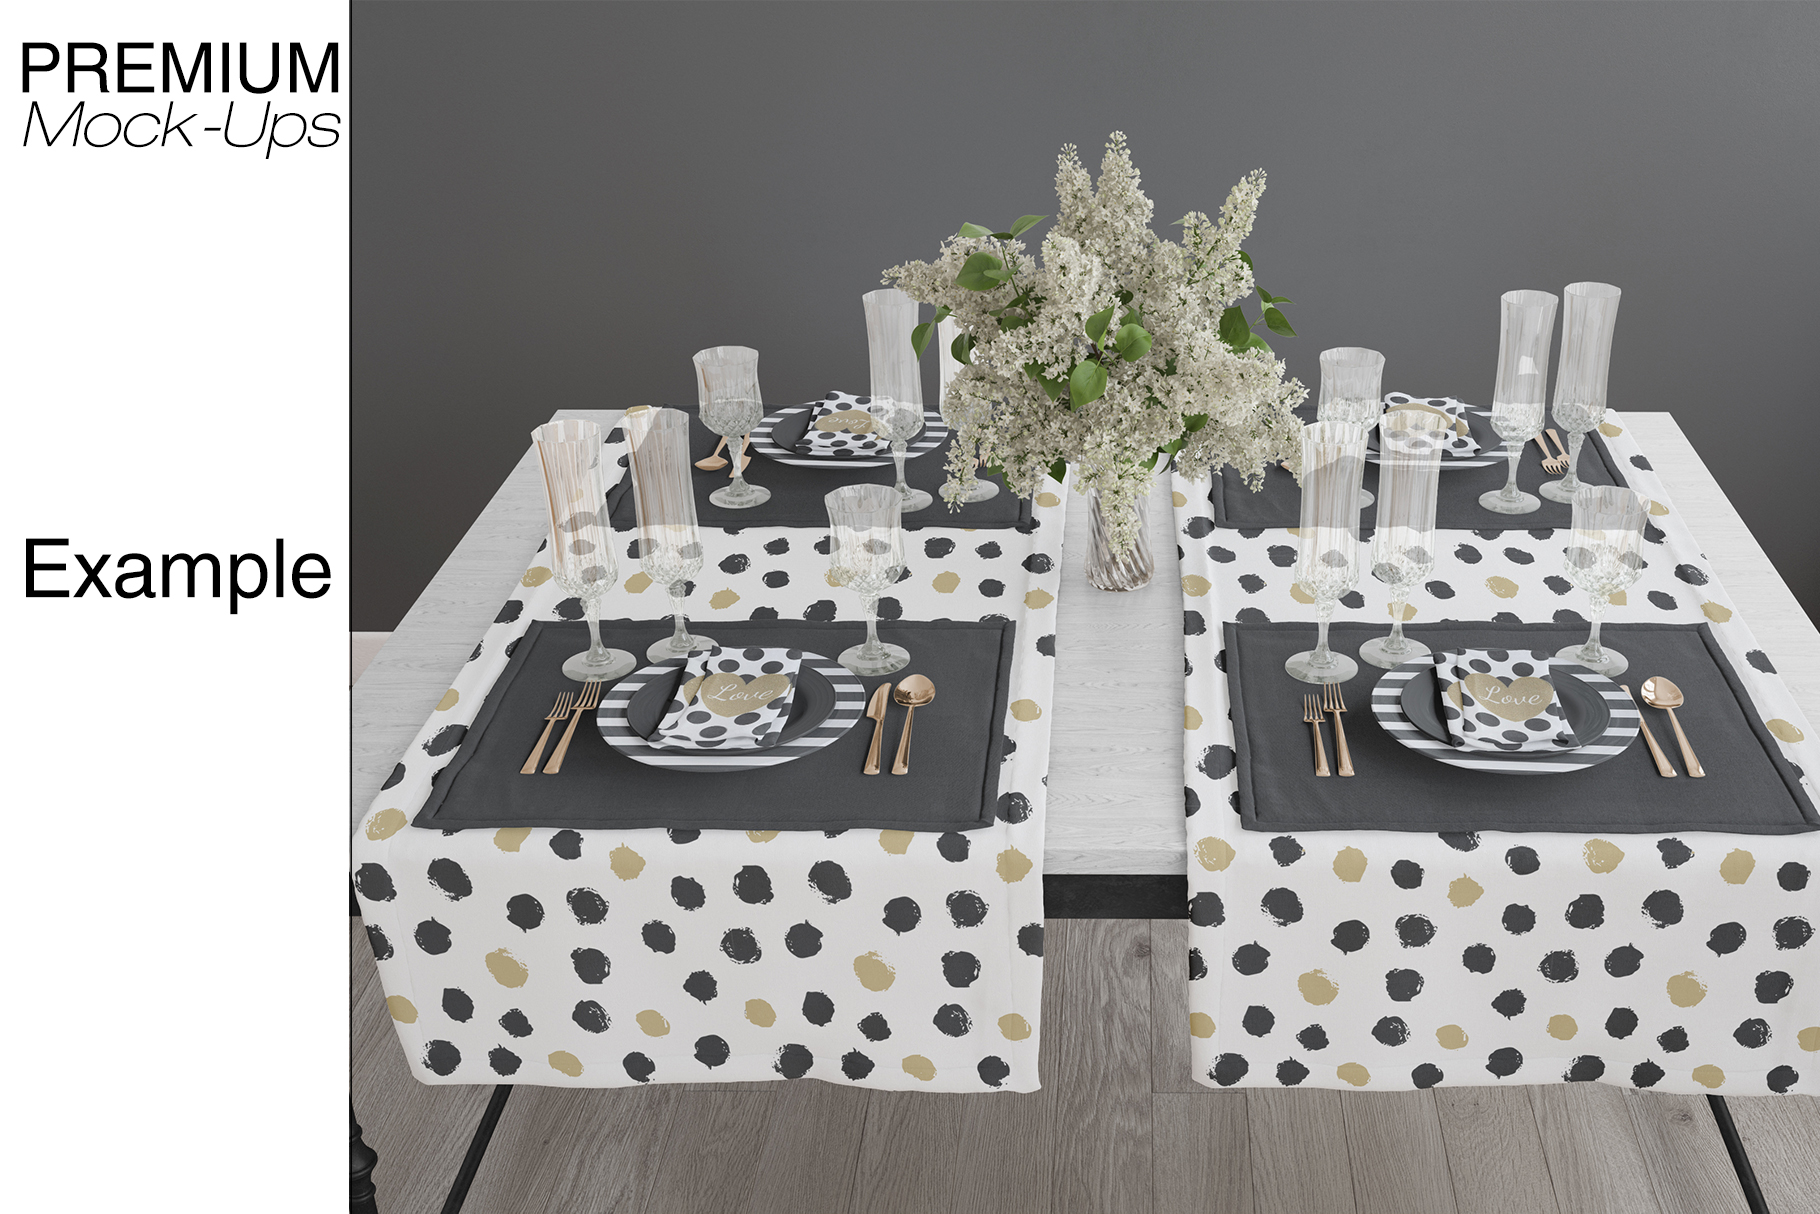 Tablecloth, Runner, Napkins & Plates example image 10